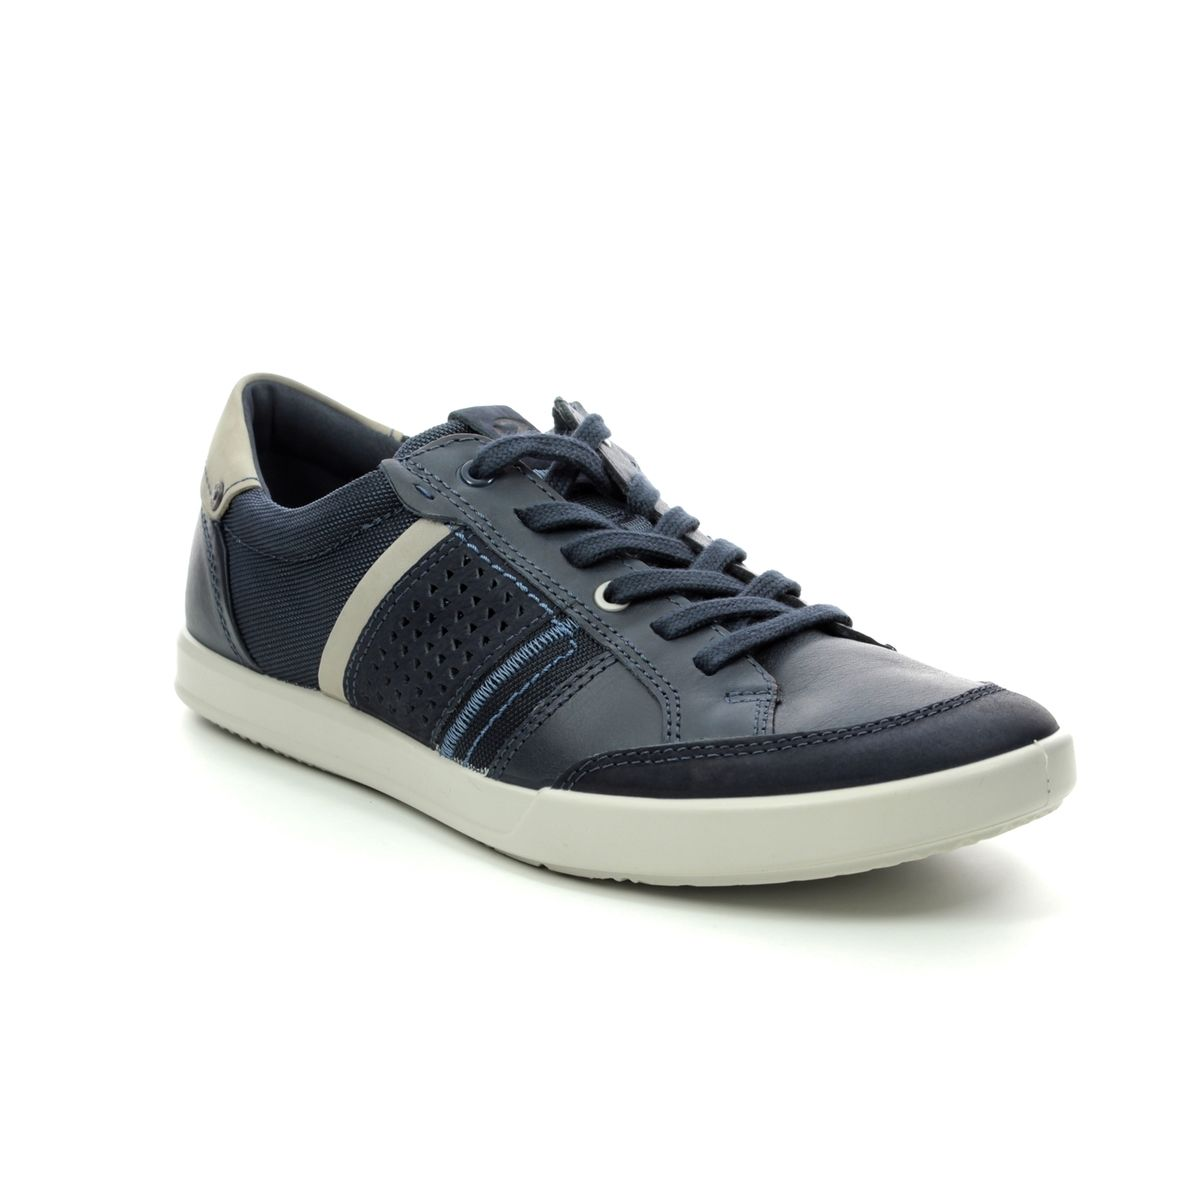 9379a2c6ed 536234/50881 Collin 2.0 at Begg Shoes & Bags